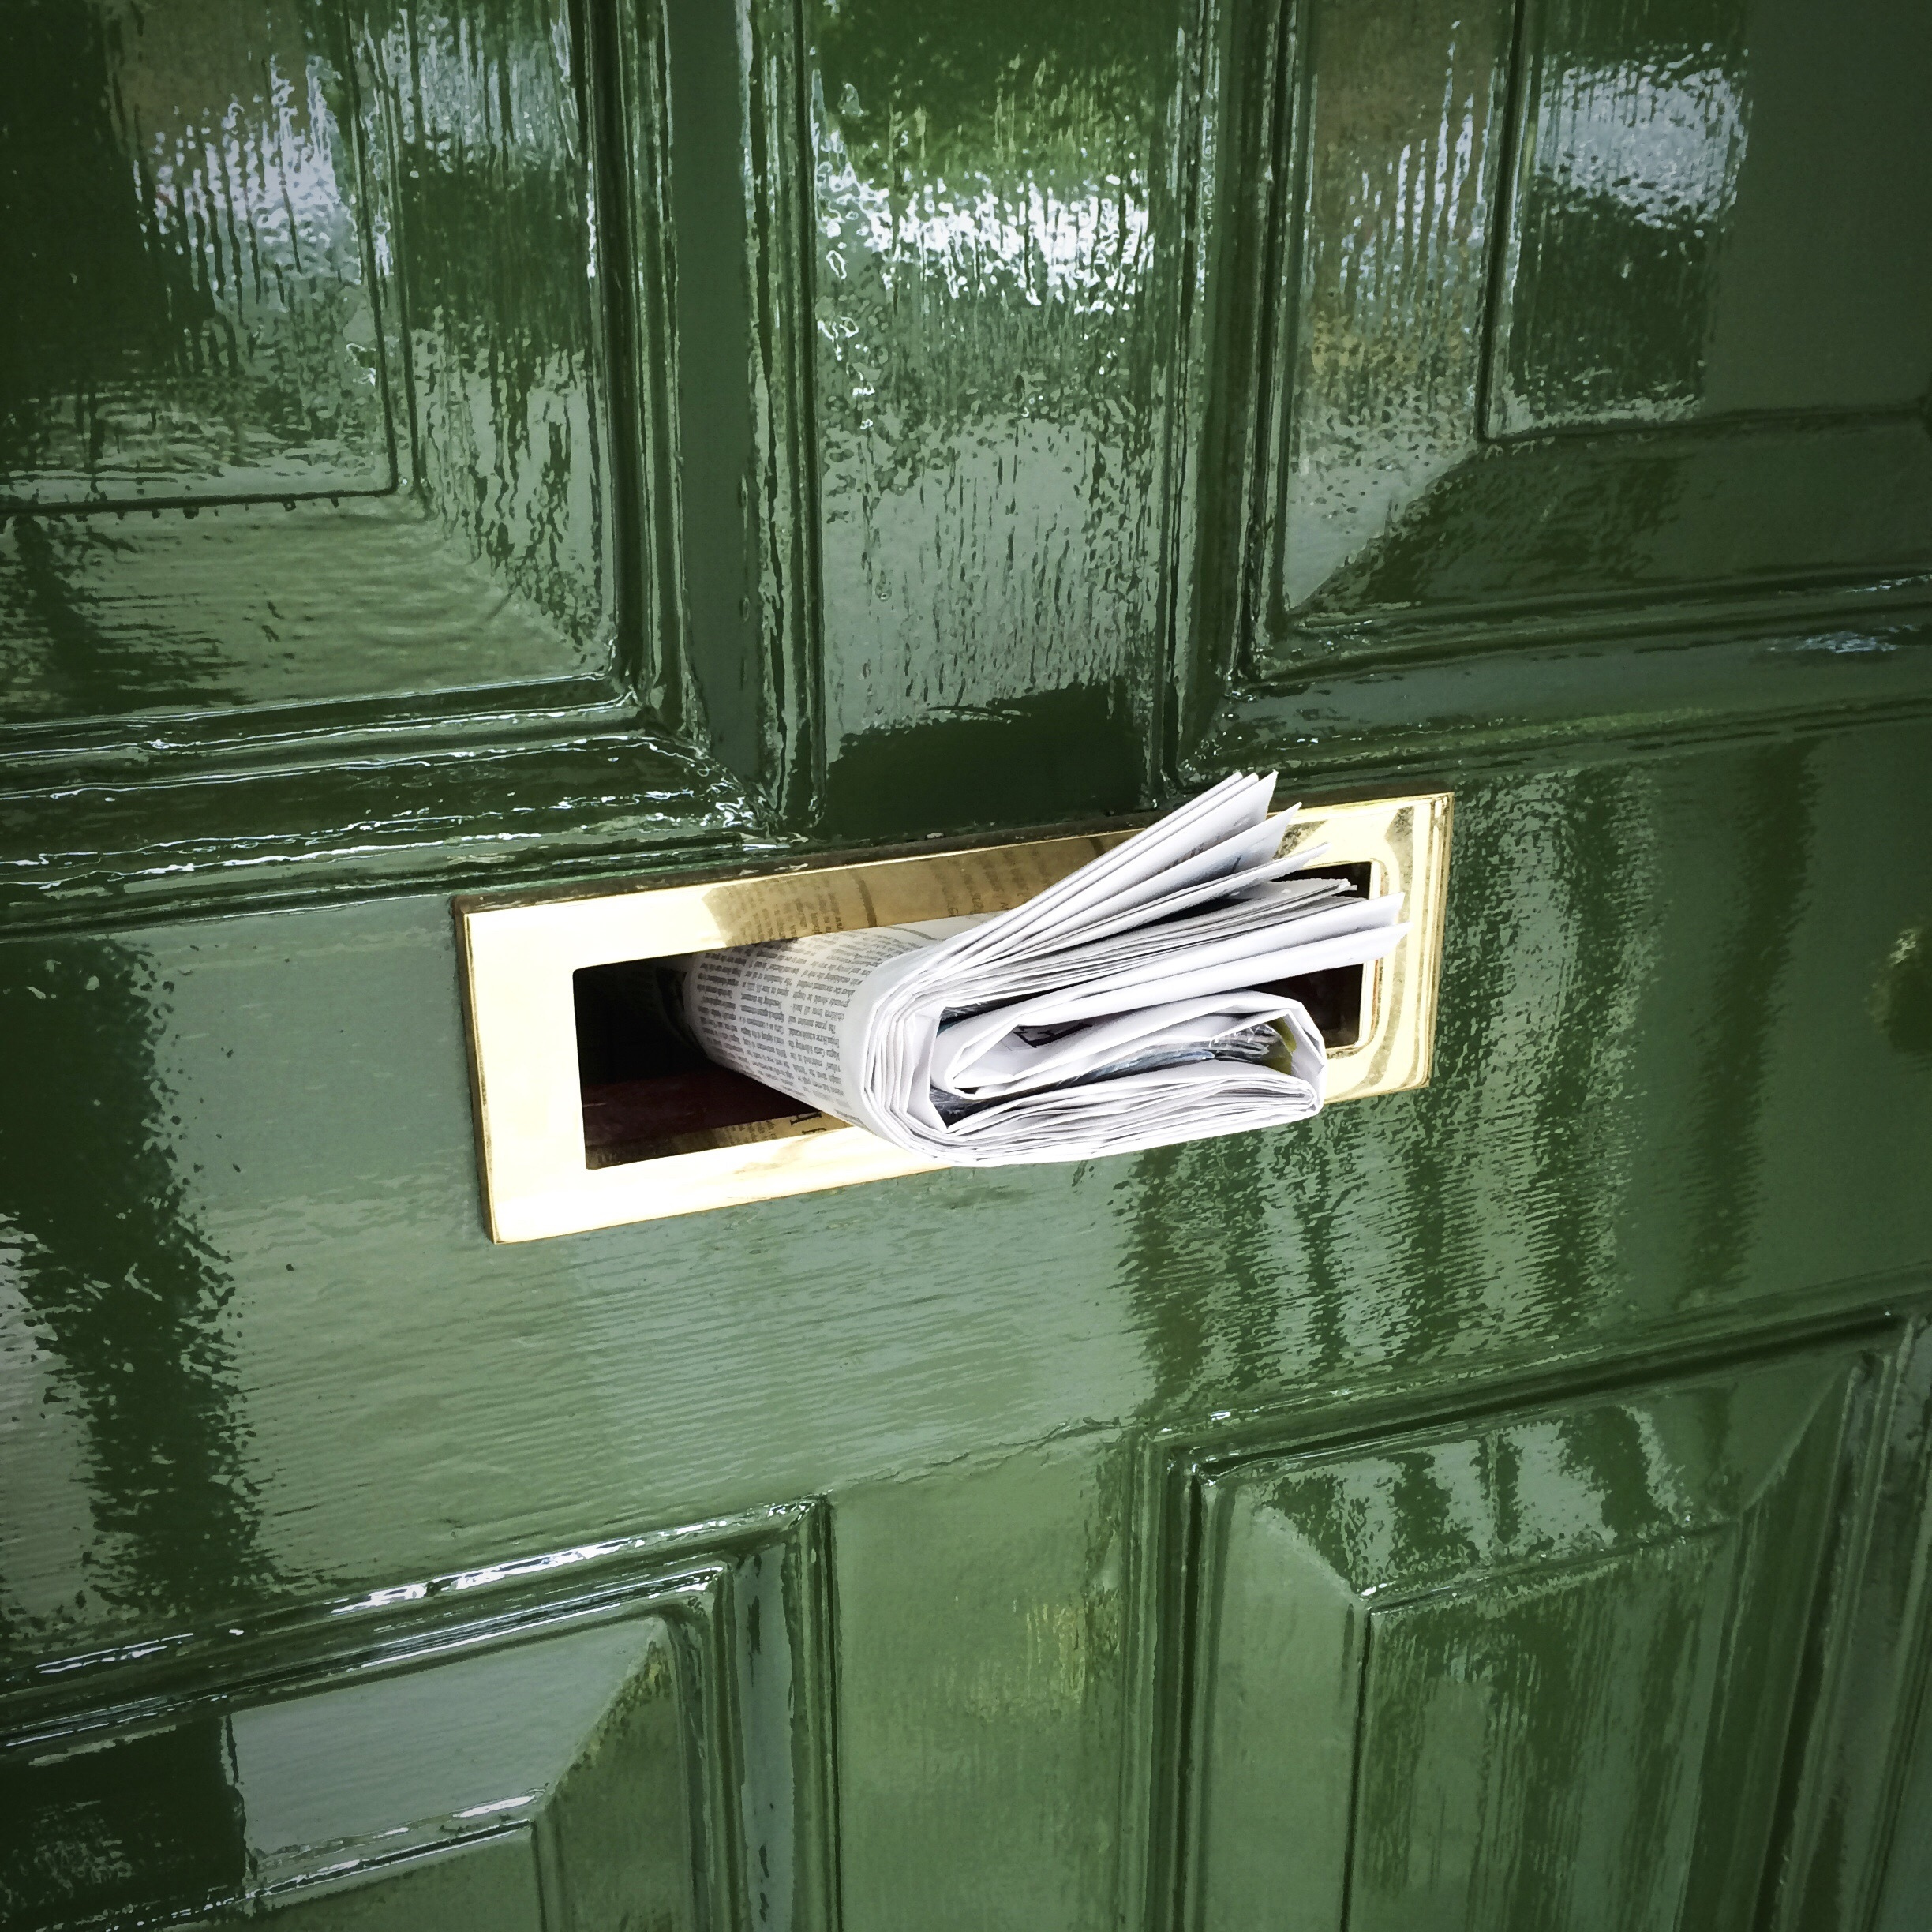 Rolled Newspaper In Mailbox